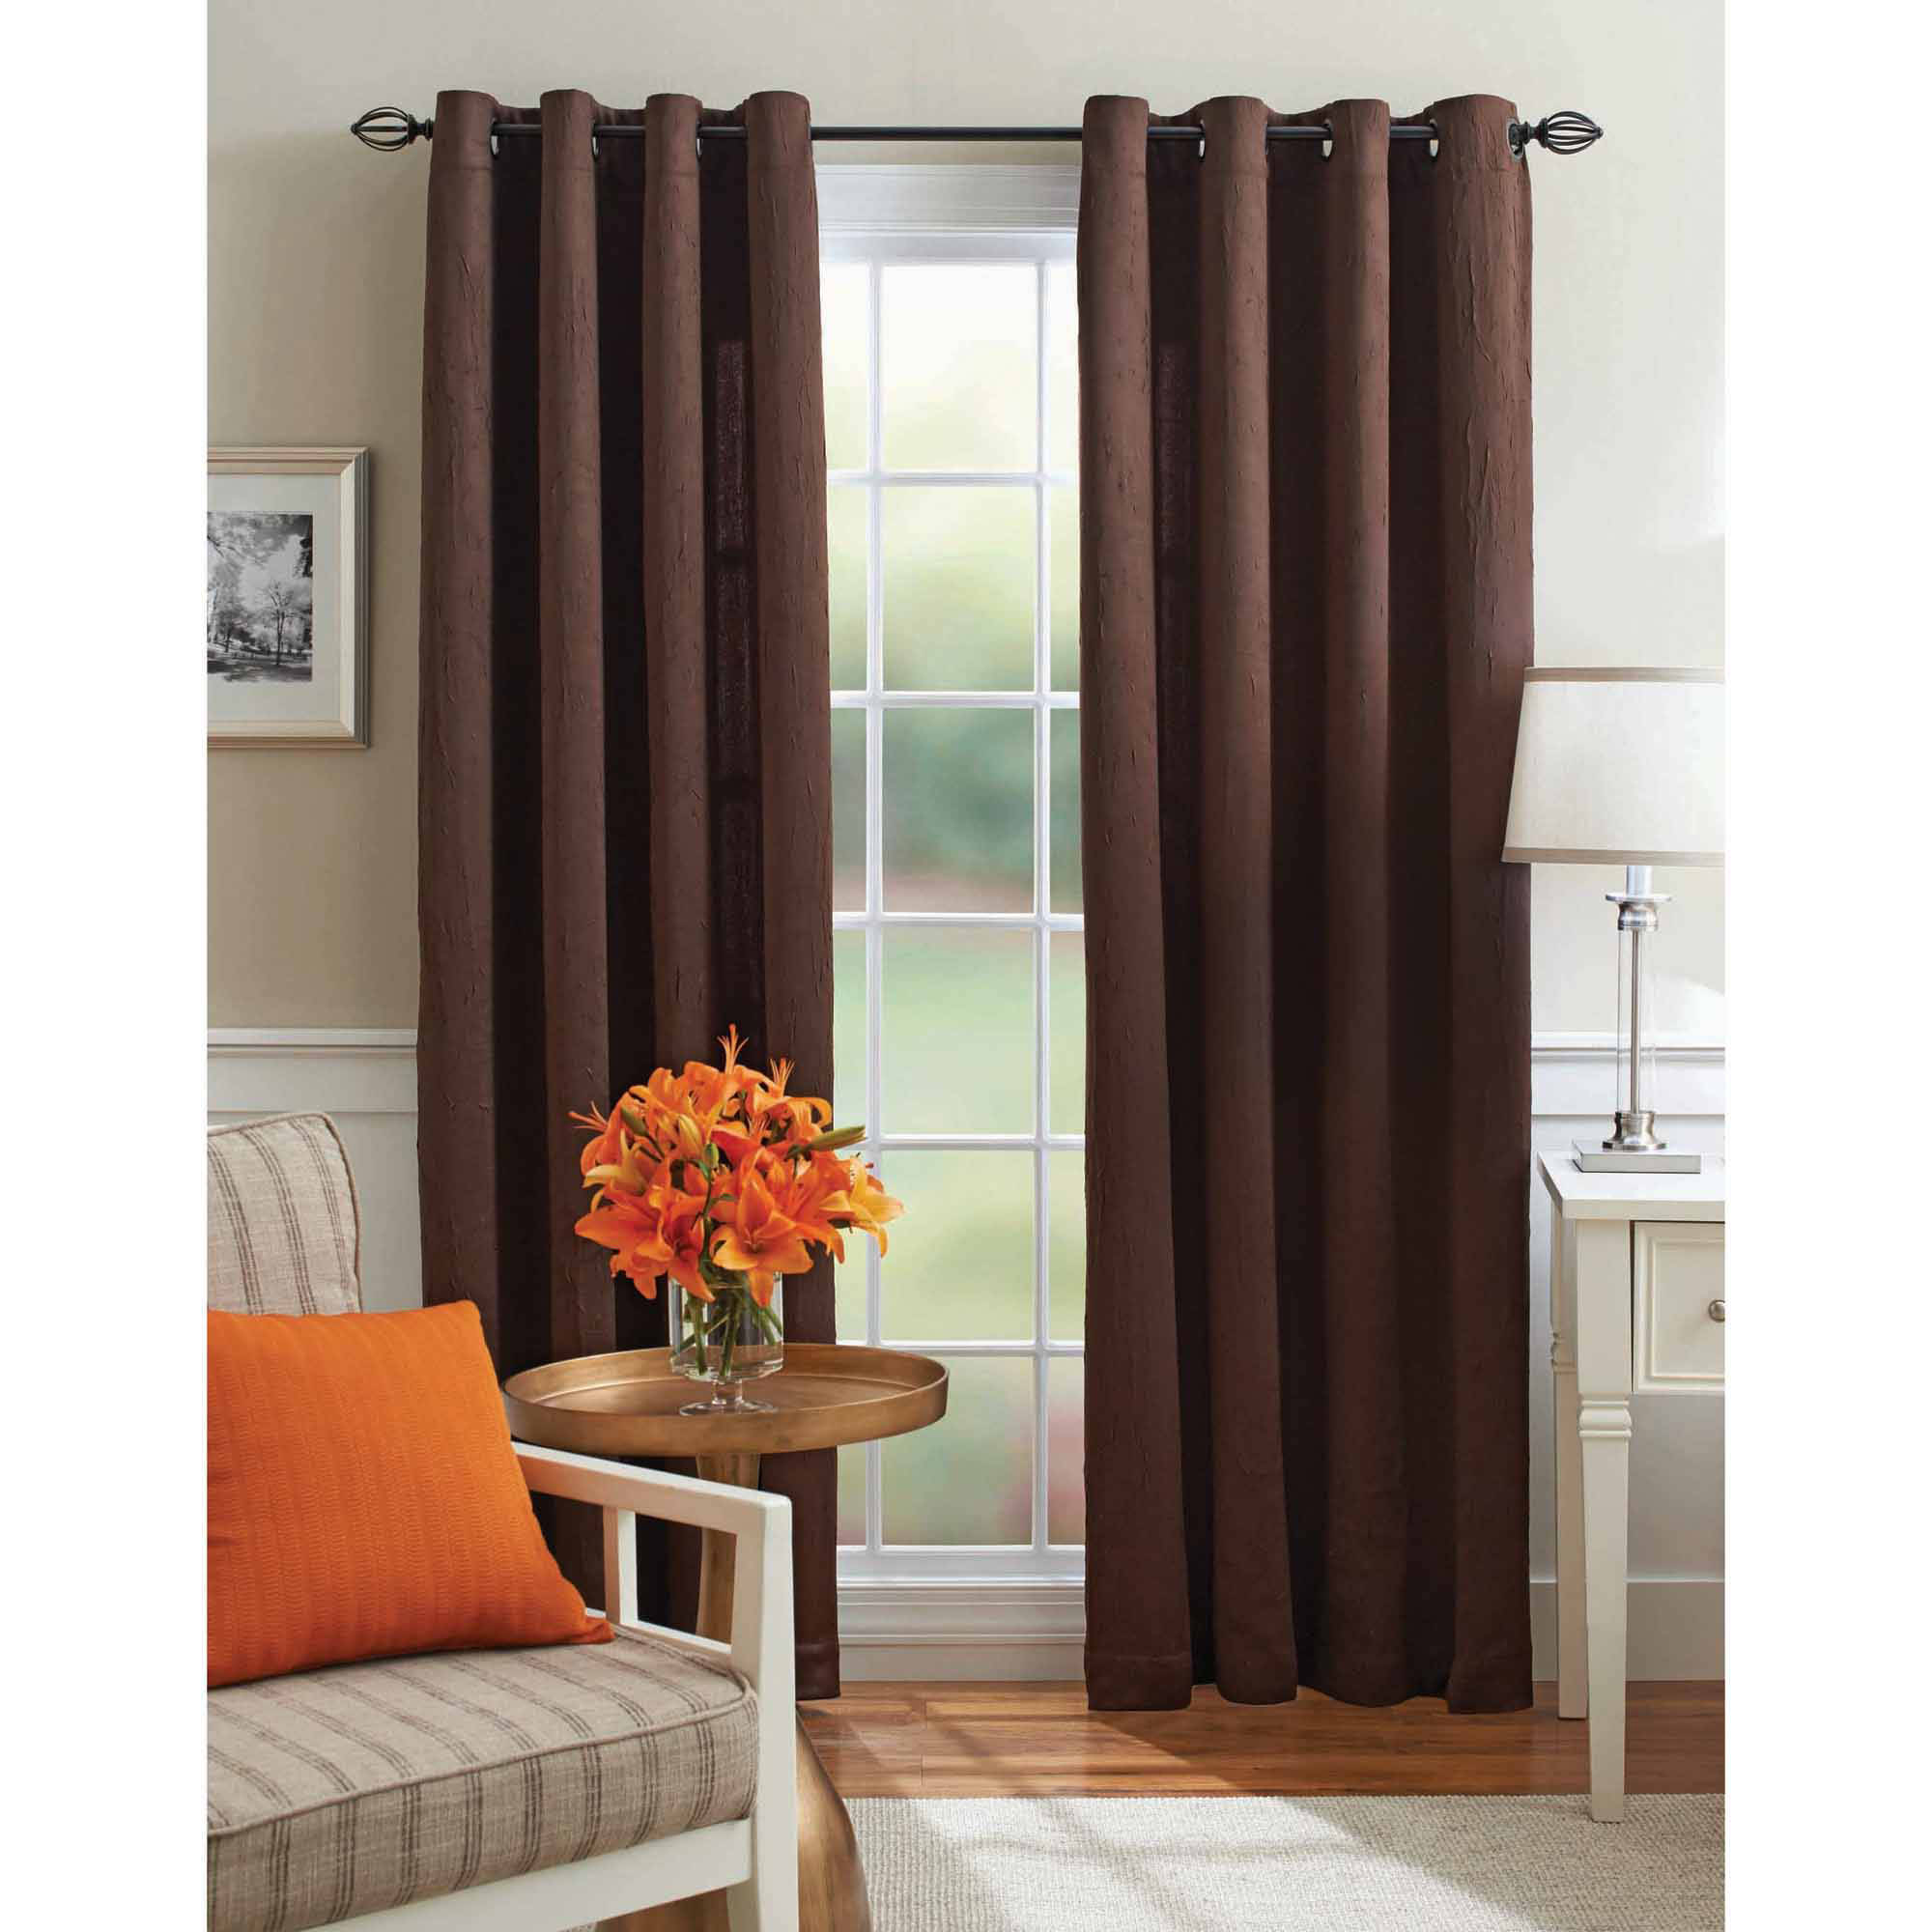 Walmart Curtains For Living Room Alluring Better Homes And Gardens Crushed Room Darkening Curtain Panel Design Decoration